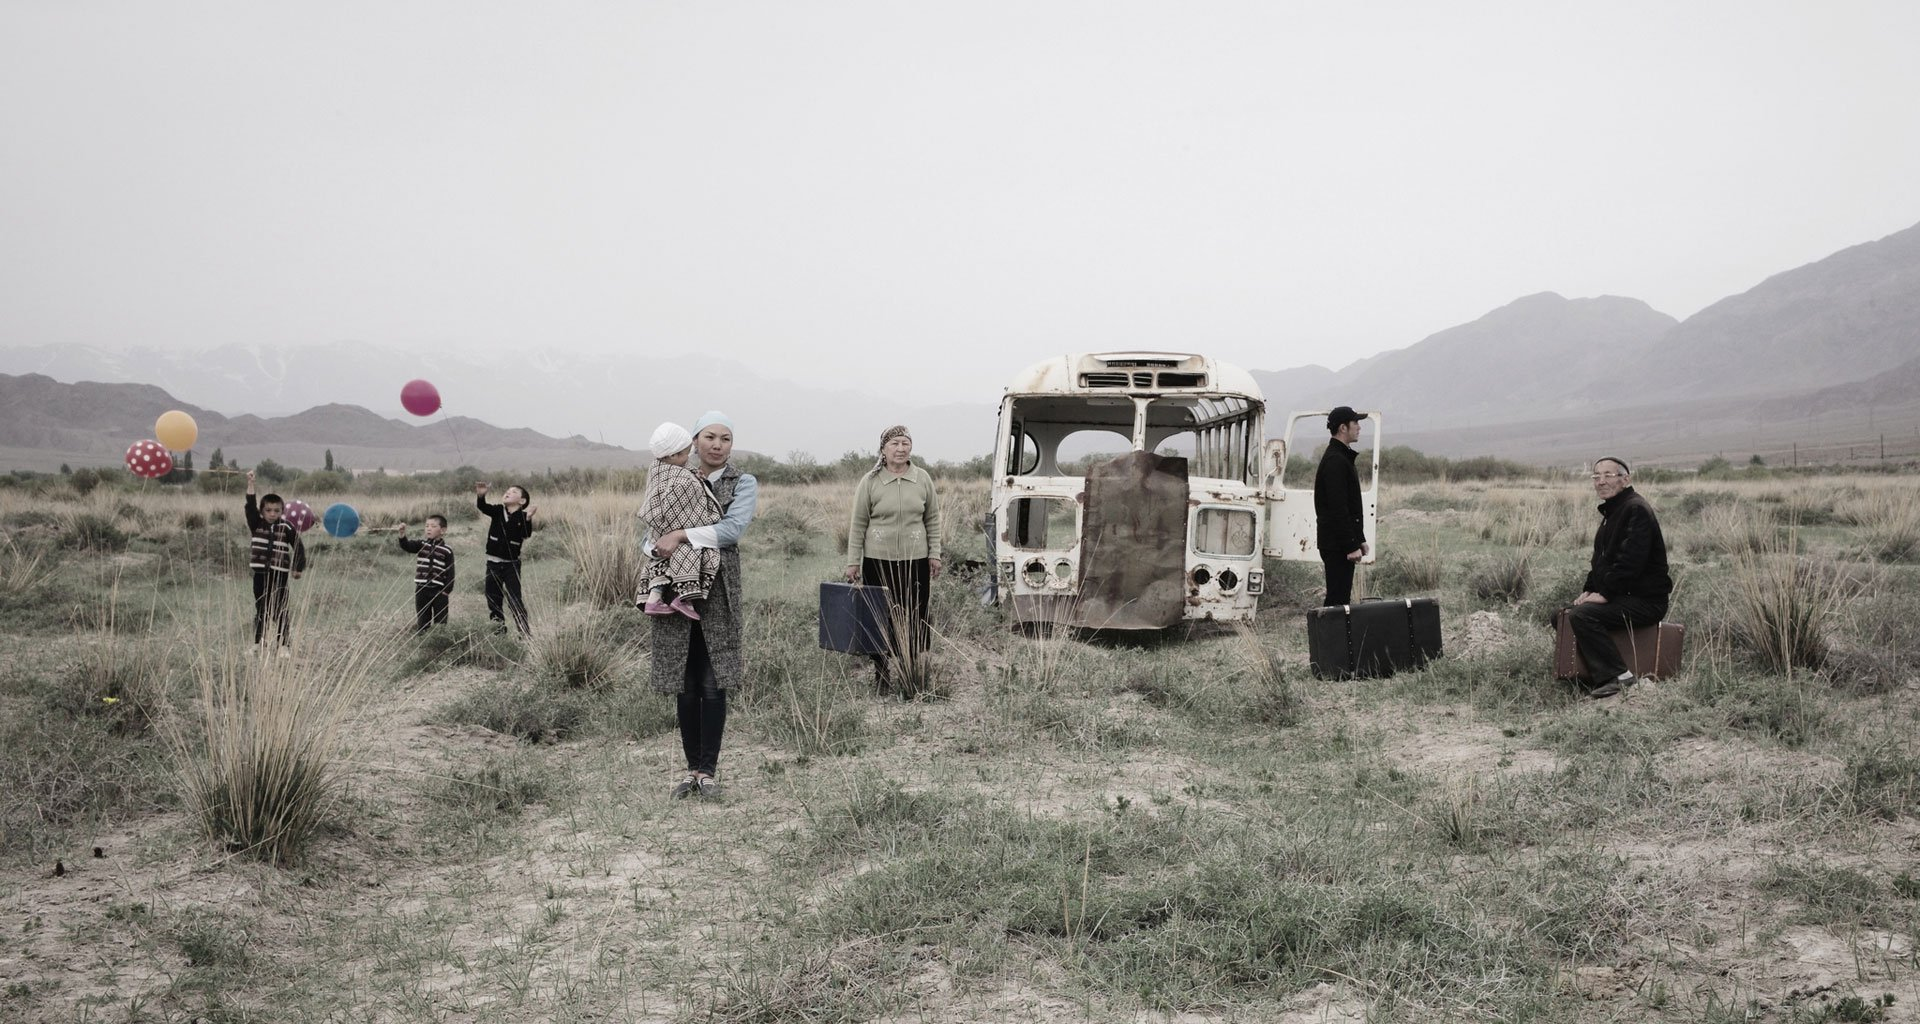 The lost Soviet dream is both charming and haunting in these photos of Kyrgyzstan